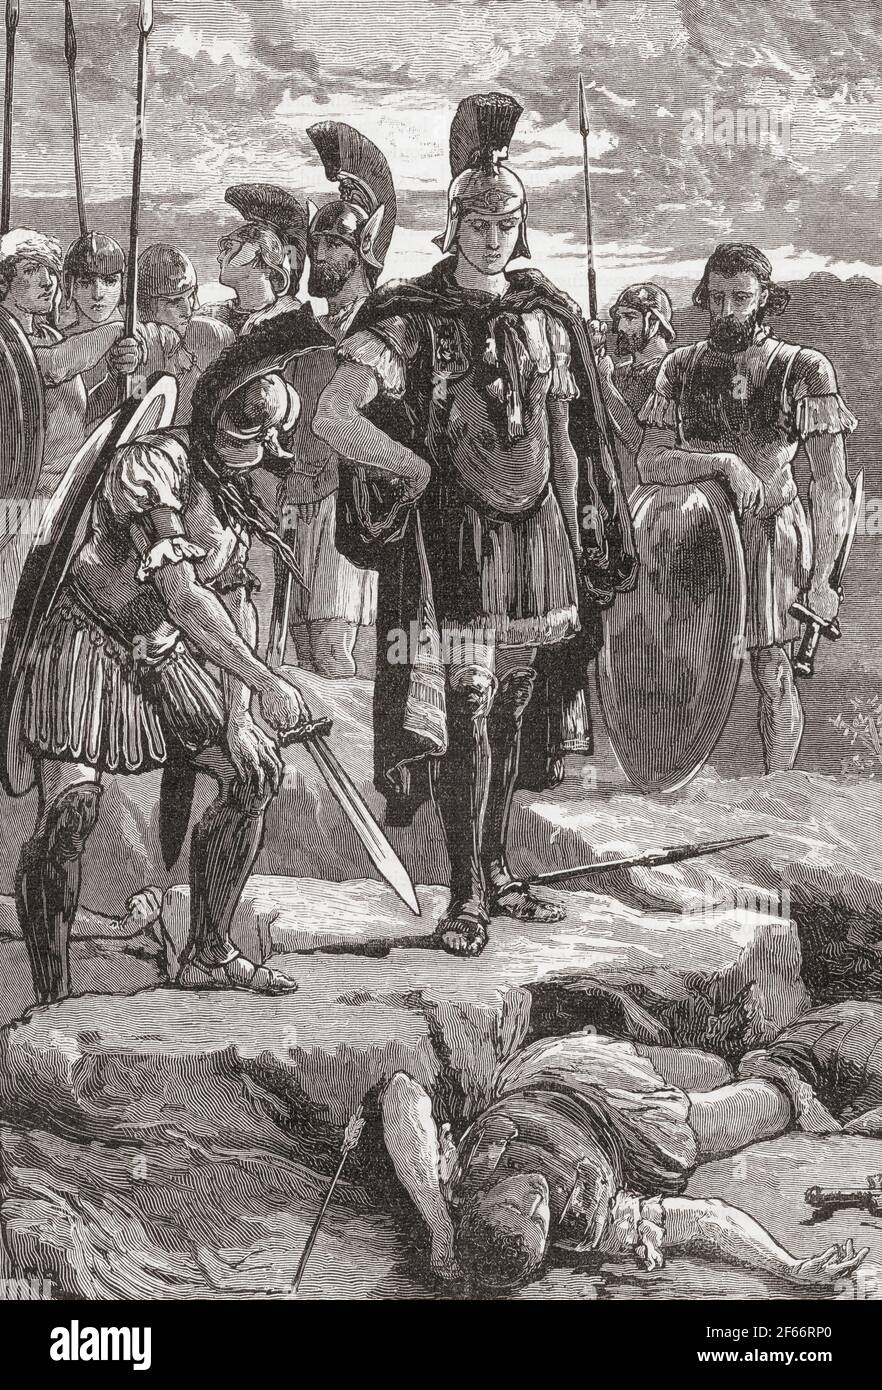 Alexander and the body of Daruis III.  Alexander III of Macedon, 20/21 July 356 BC – 10/11 June 323 BC, aka Alexander the Great.  King of the ancient Greek kingdom of Macedon. Darius III, c. 380 – 330 BC.  Last Achaemenid King of Kings of Persia.  From Cassell's Universal History, published 1888. Stock Photo